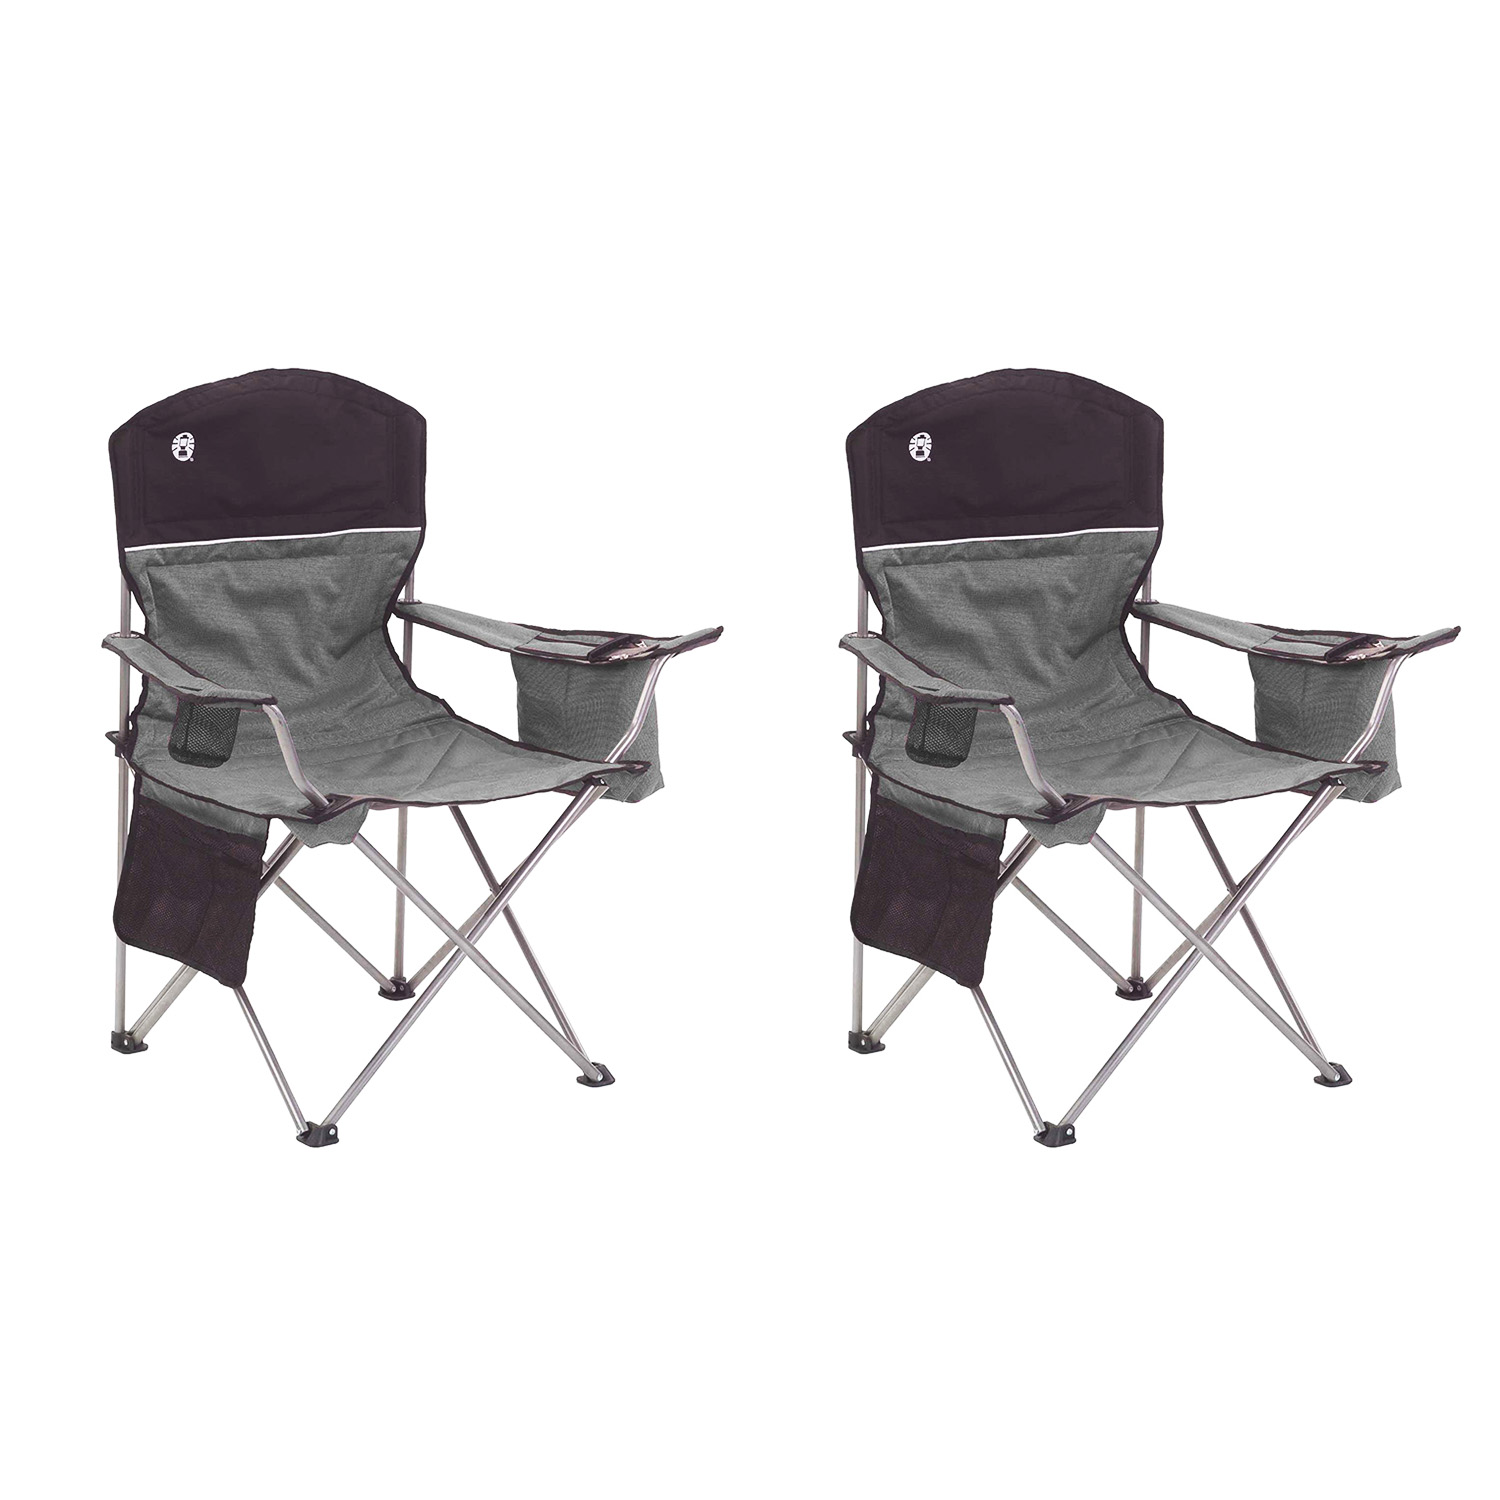 Coleman Oversized Black Camping Lawn Chairs Cooler 2 Pack